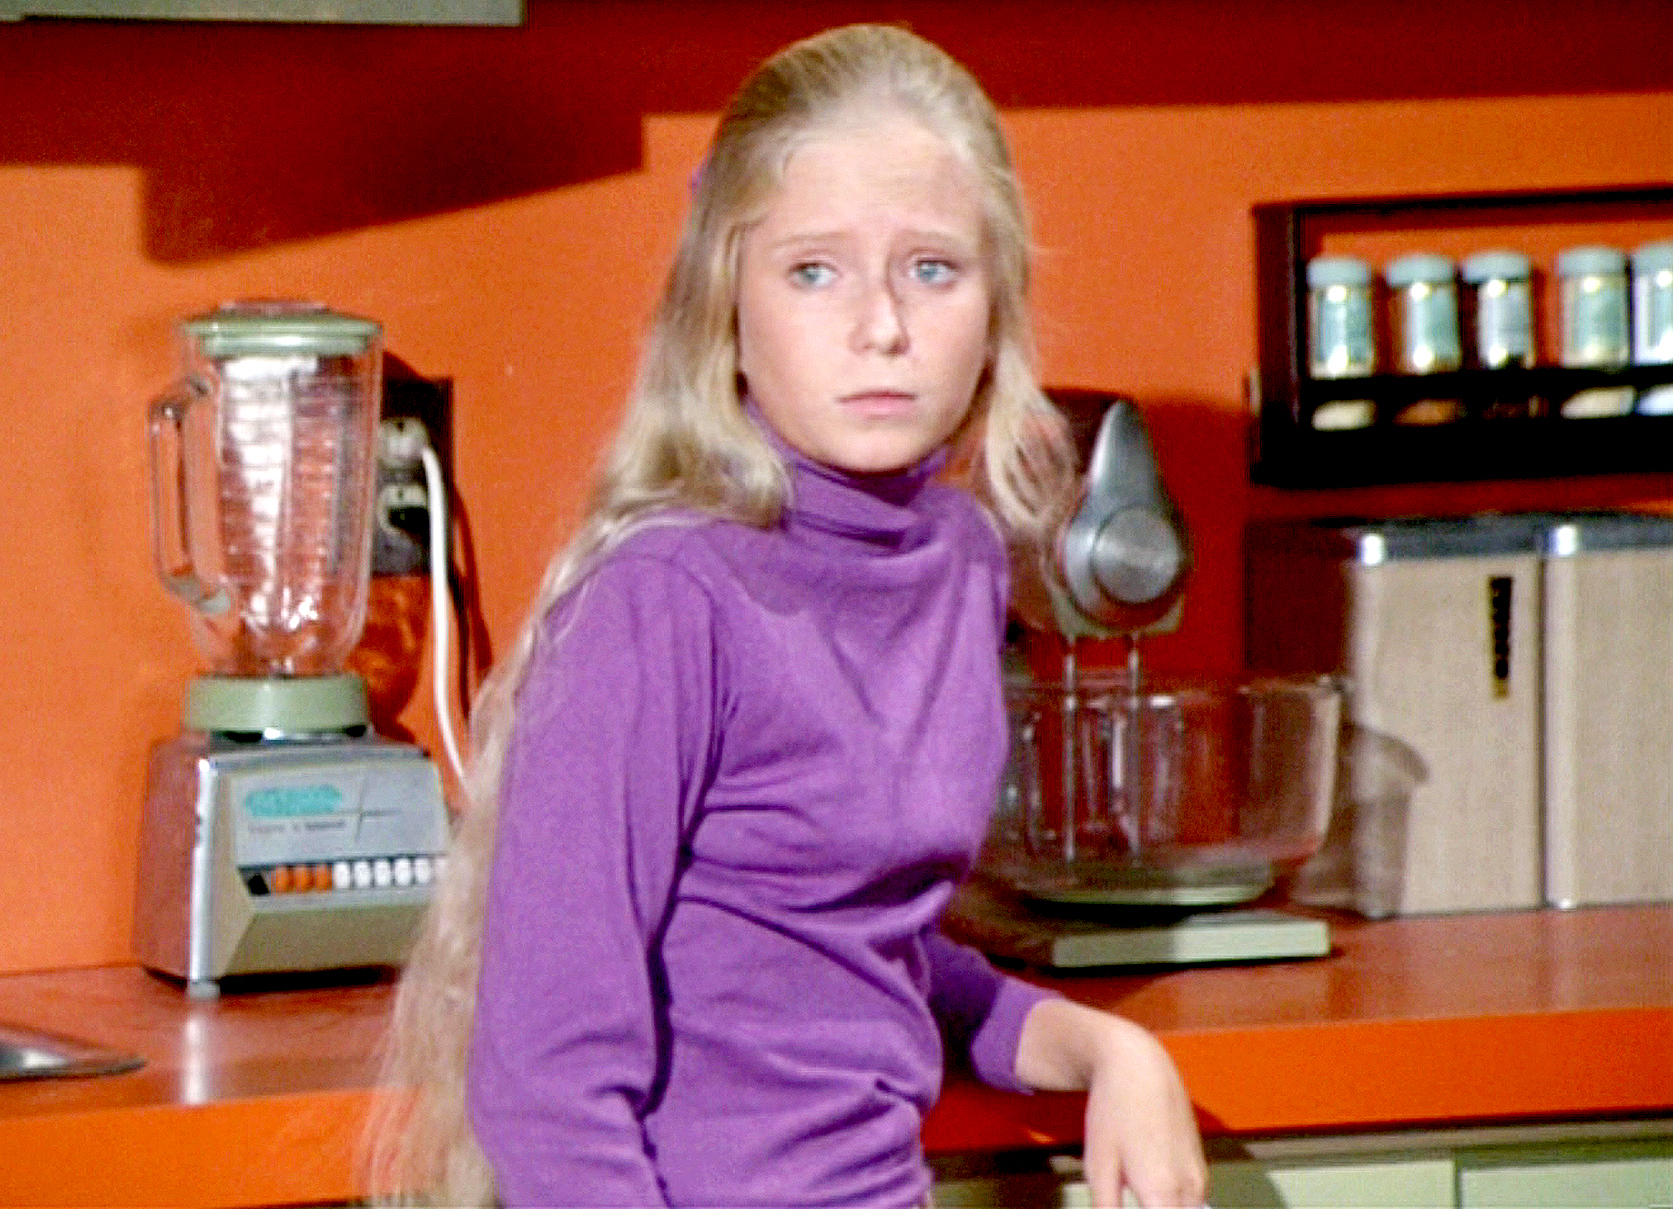 jan brady zoom 54a64e5f c96f 4683 b0b6 df452bfb2e01 The 25 Best Teens in TV History